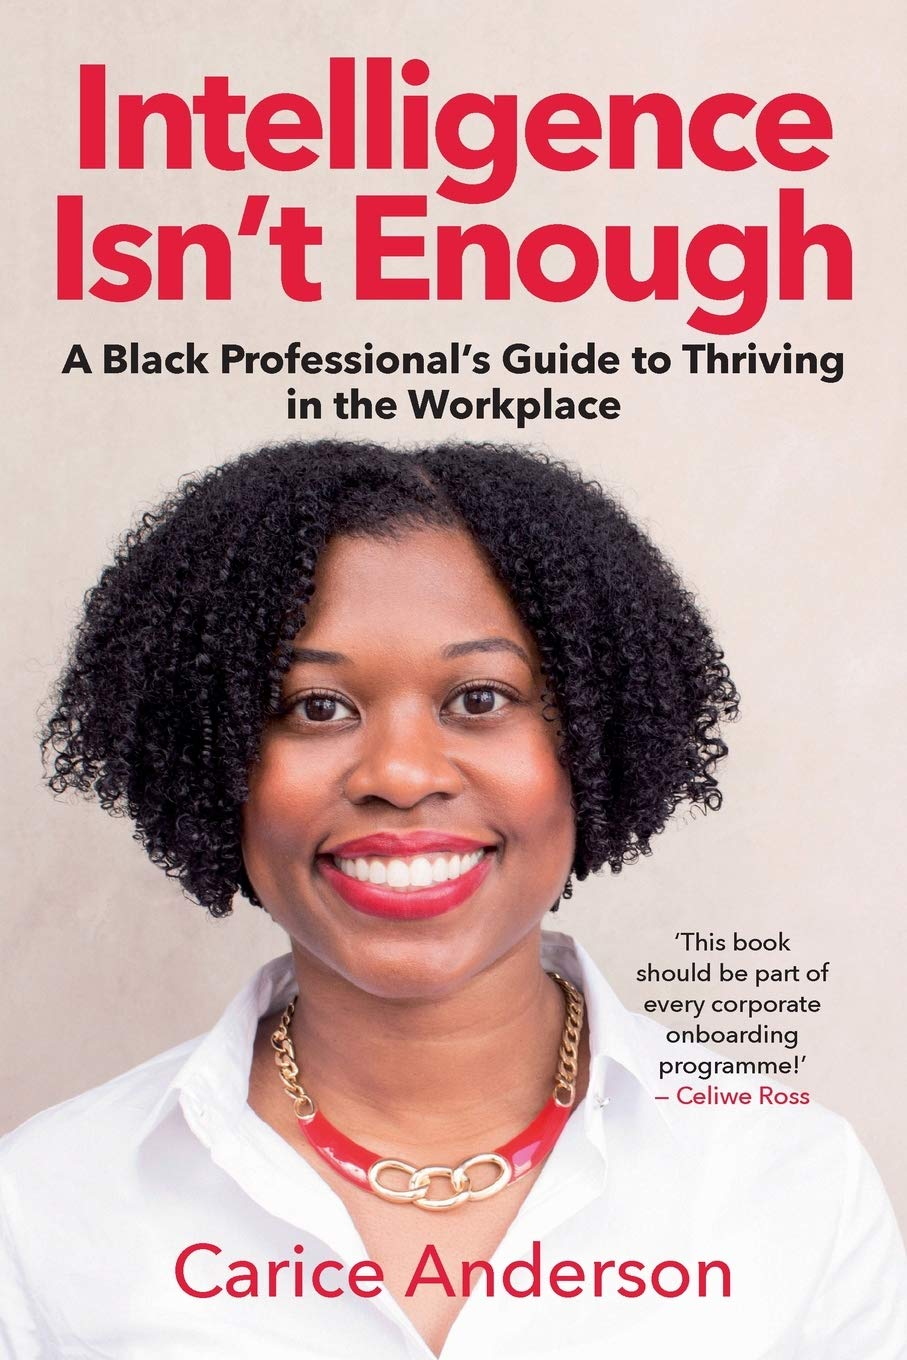 INTELLIGENCE ISN'T ENOUGH - A Black Professional's Guide to Thriving in the Workplace